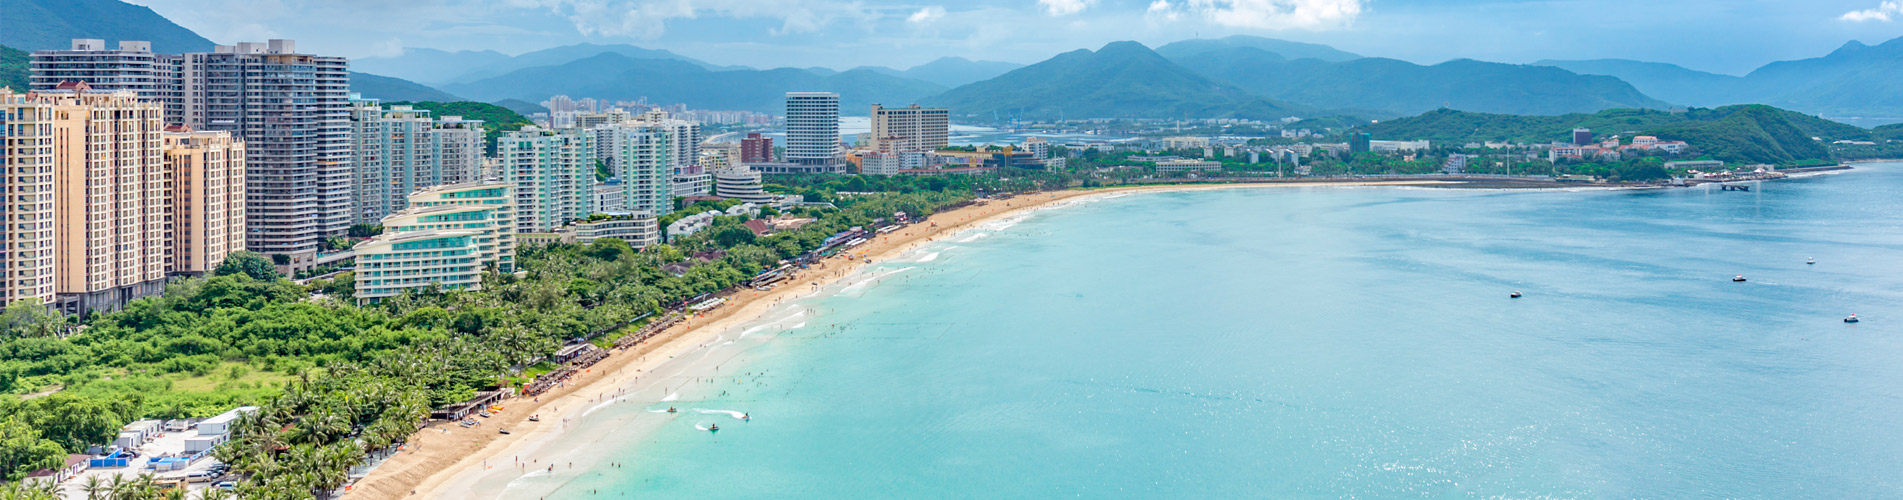 Sanya Short Stay Tour | Wendy Wu Tours